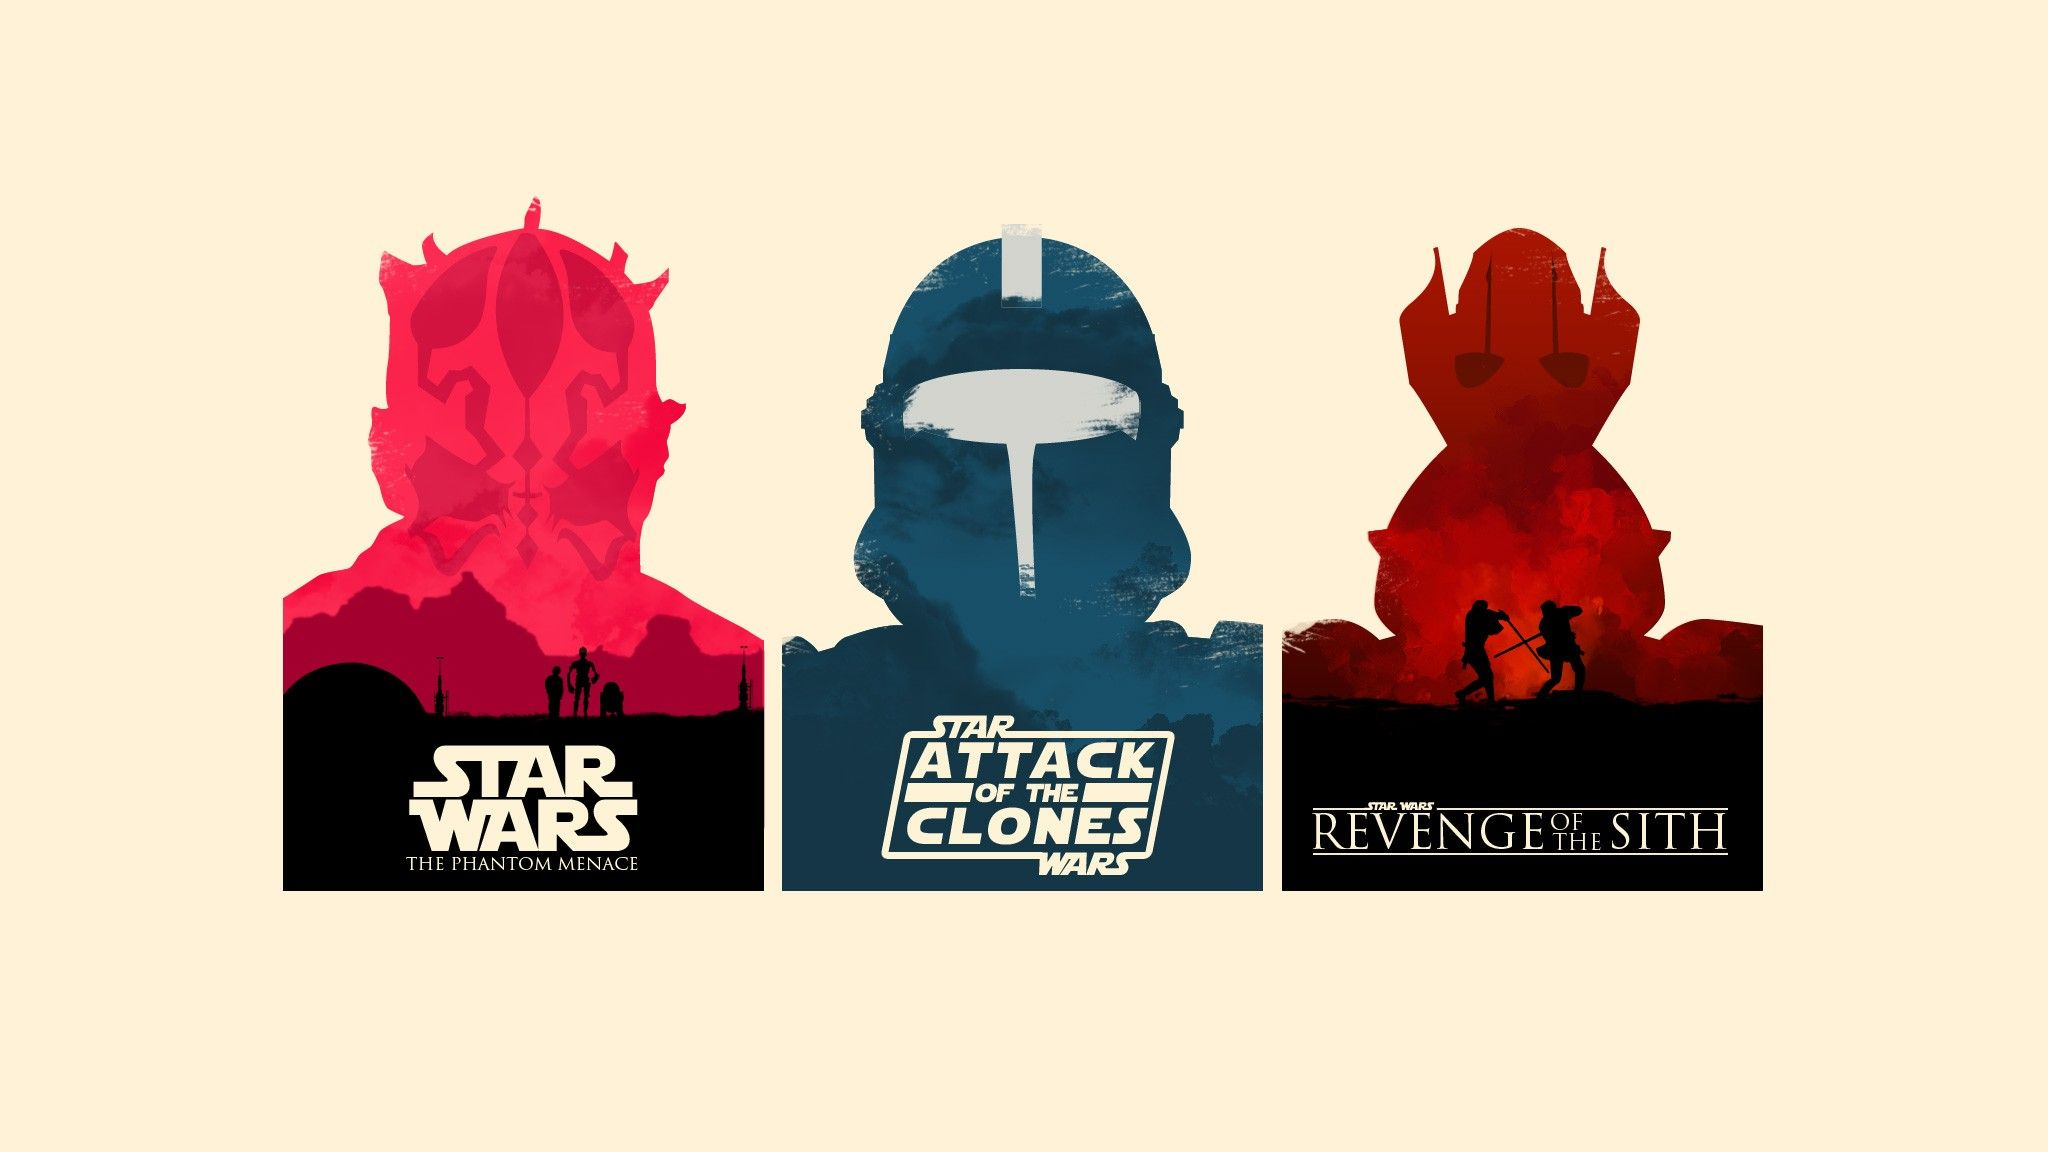 Star Wars Posters Star Wars Wallpaper Star Wars Awesome Star Wars Images